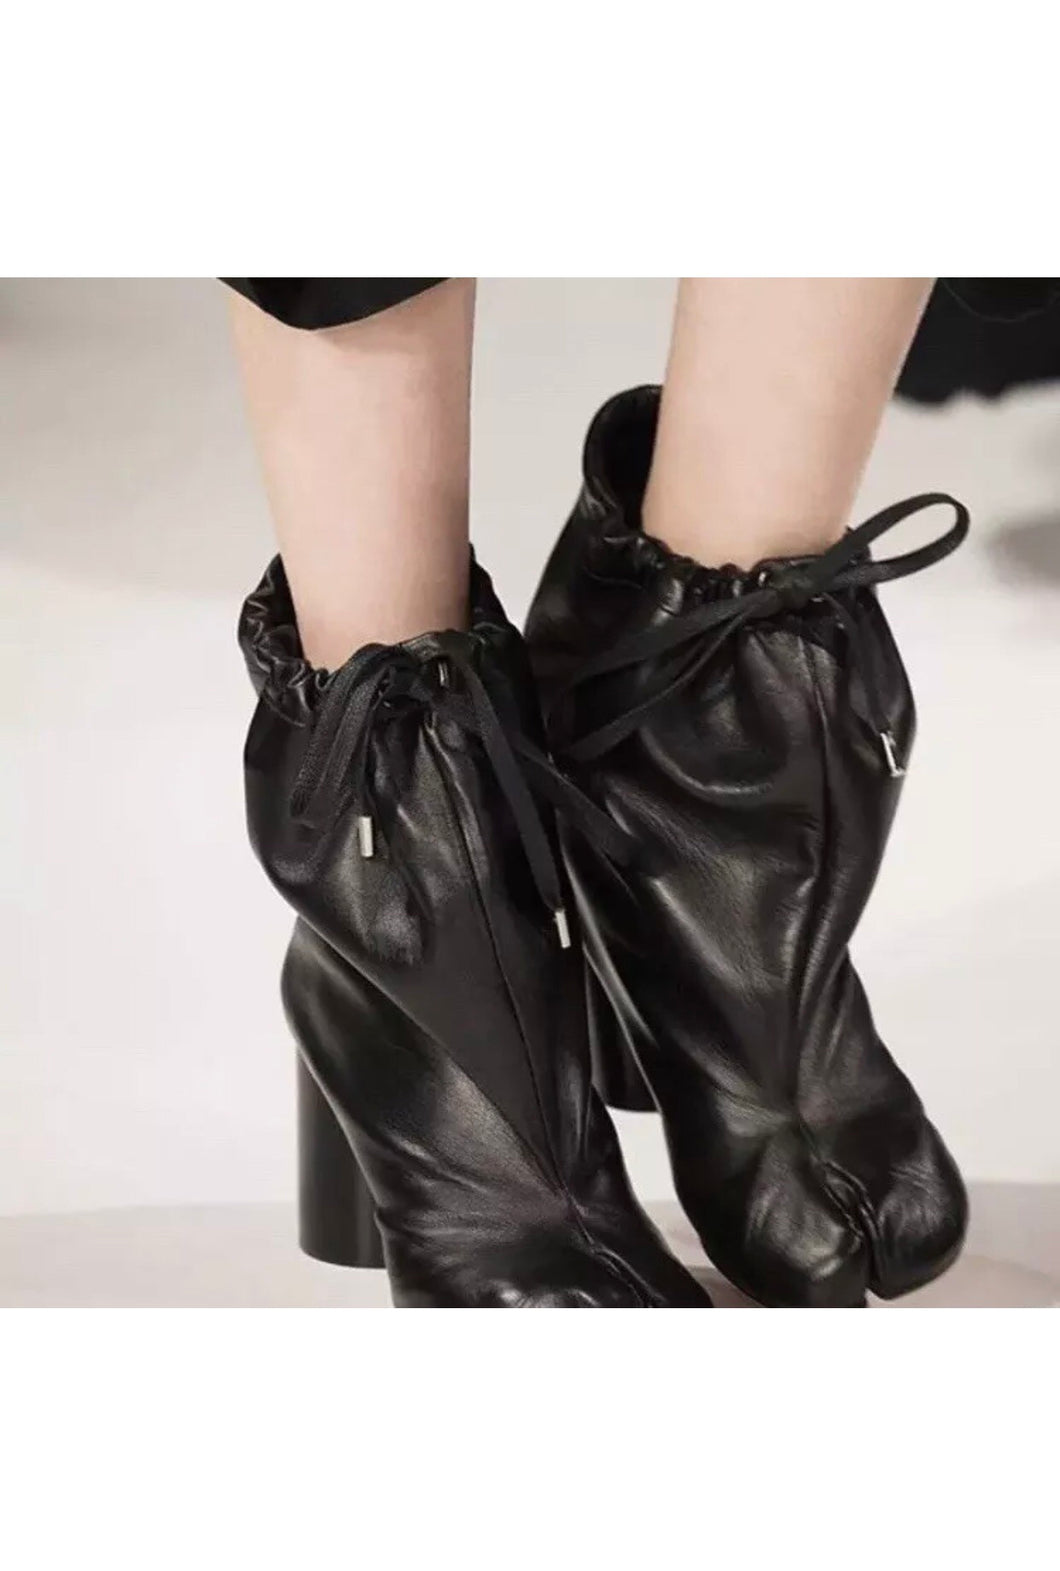 MAISON MARTIN MARGIELA tabi shoes